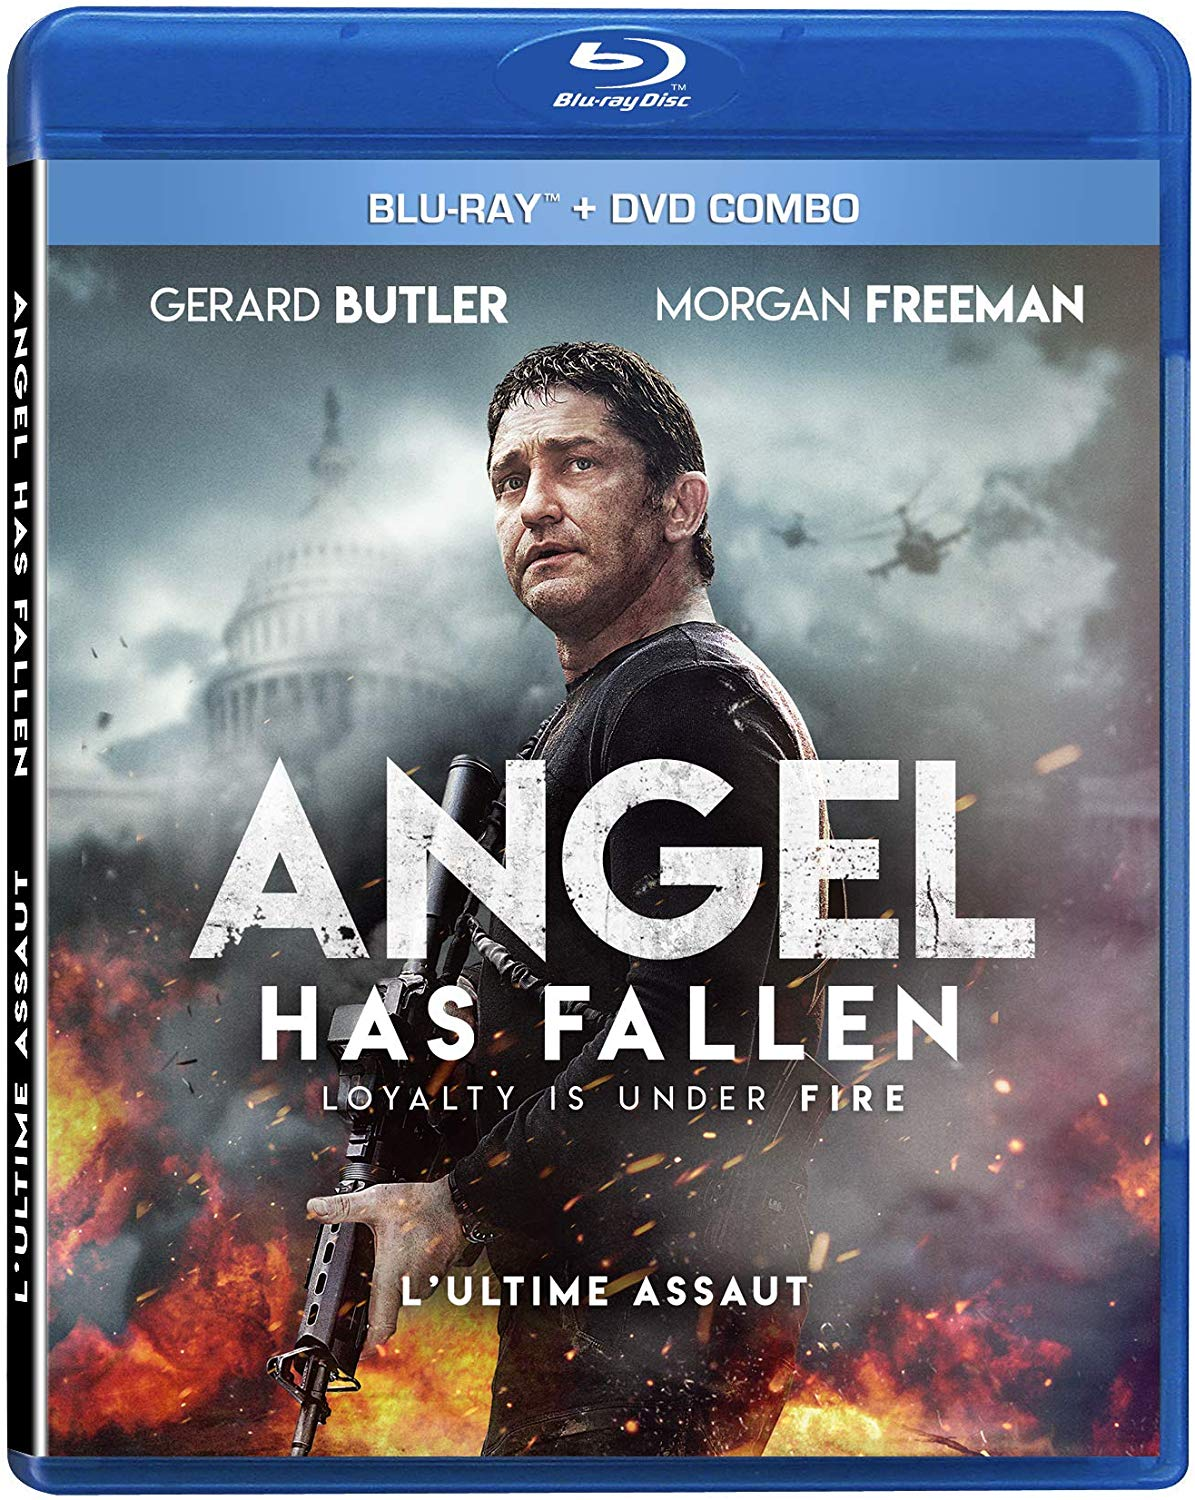 Angel Has Fallen on DVD and Blu-ray